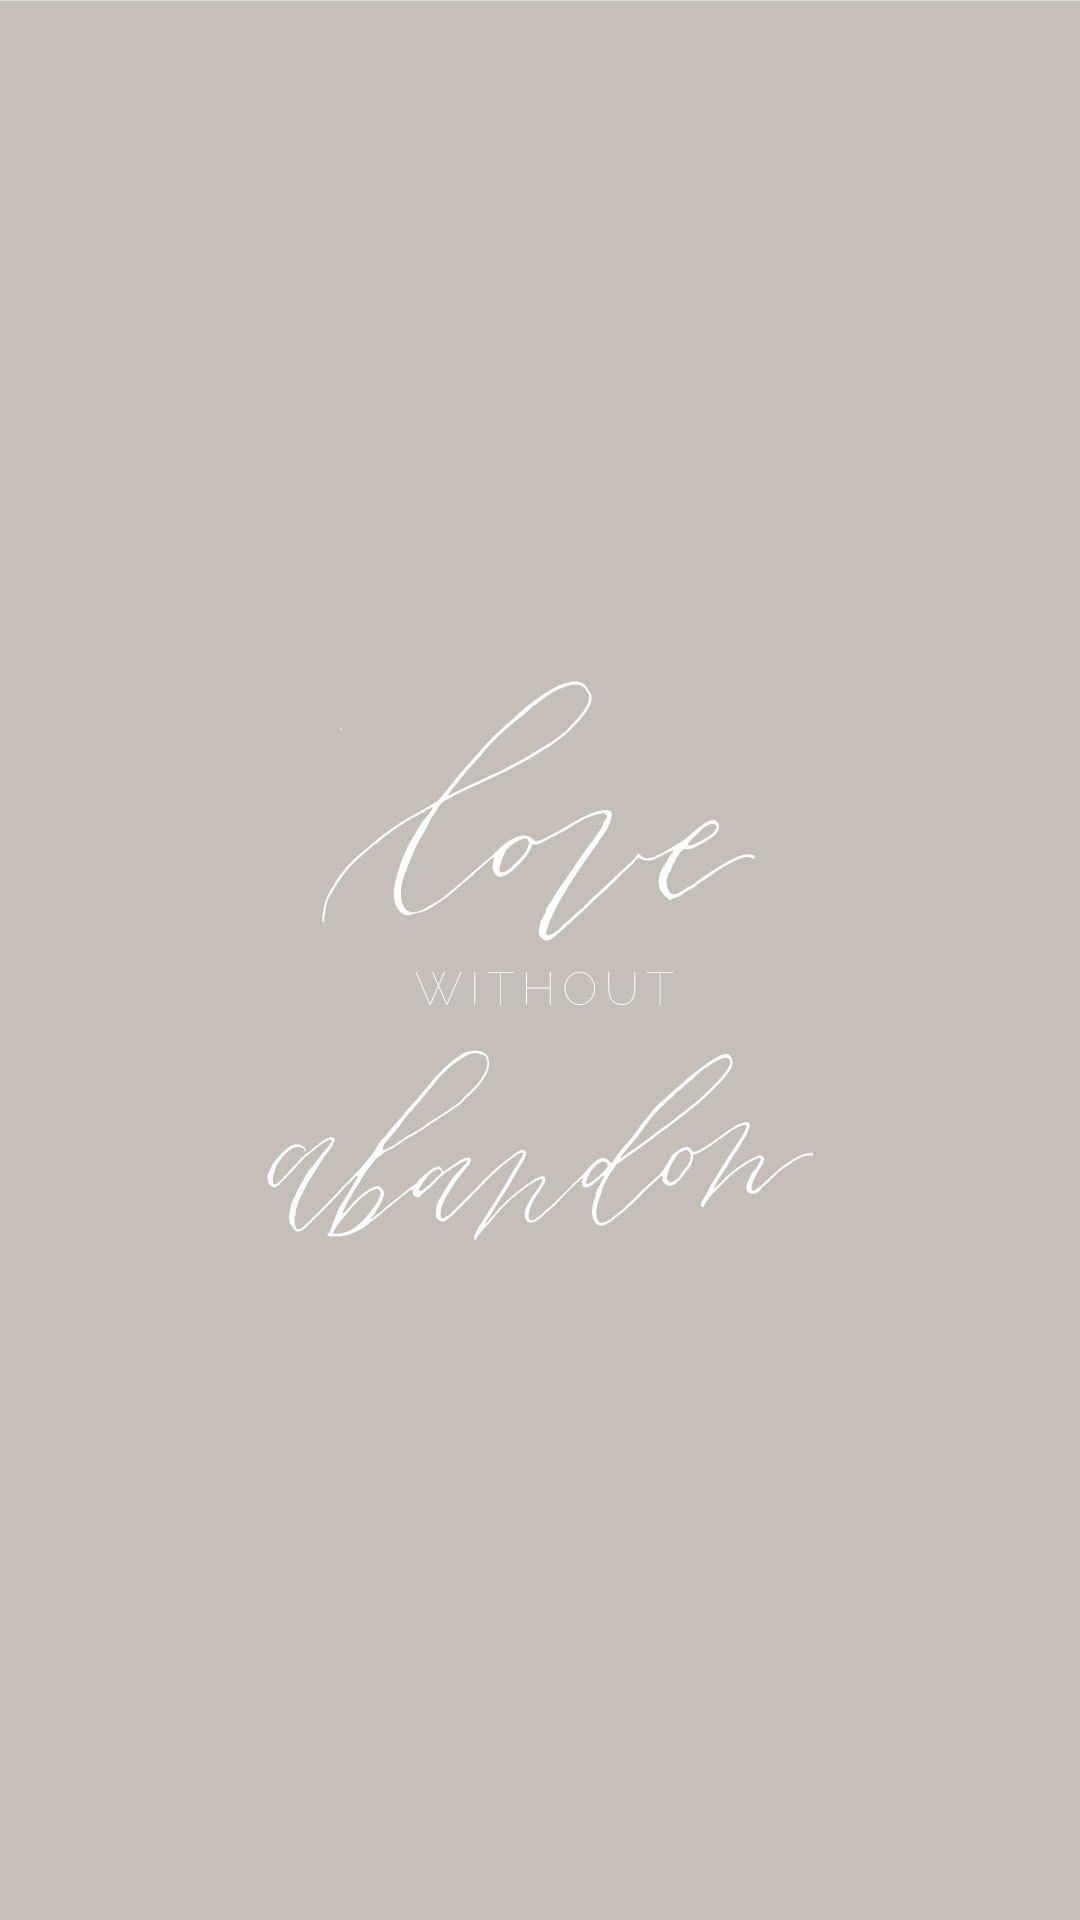 Love Without Abandon Free Desktop Background Wallpaper Mobile Screensaver Lockscreen Wallpaper Wednesday Bo Inspirational Quotes Cover Quotes Happy Words